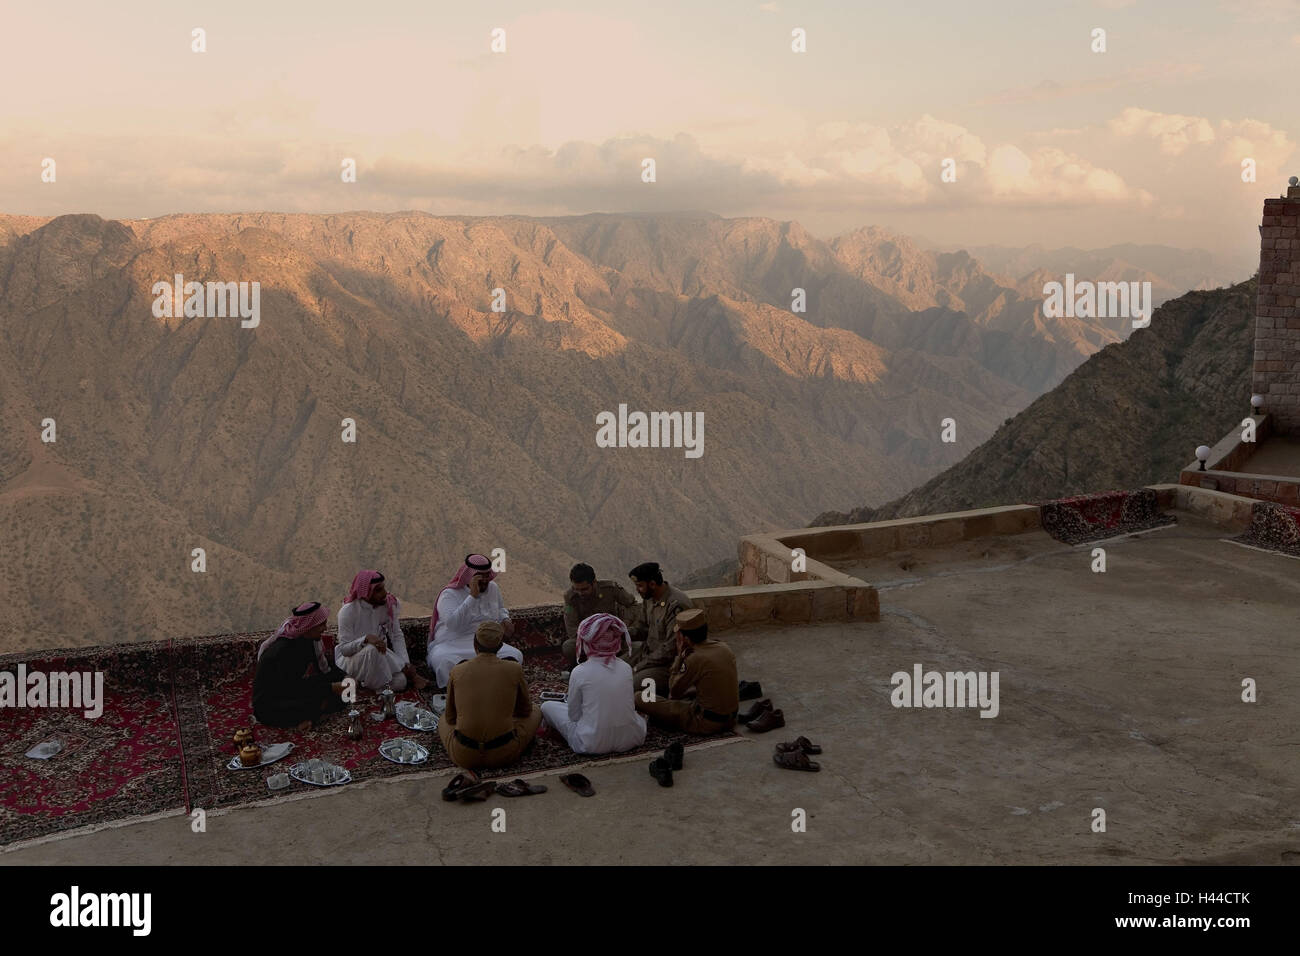 L'Arabie saoudite, Asir, Al Wadiyany, lookout, touristiques, Photo Stock